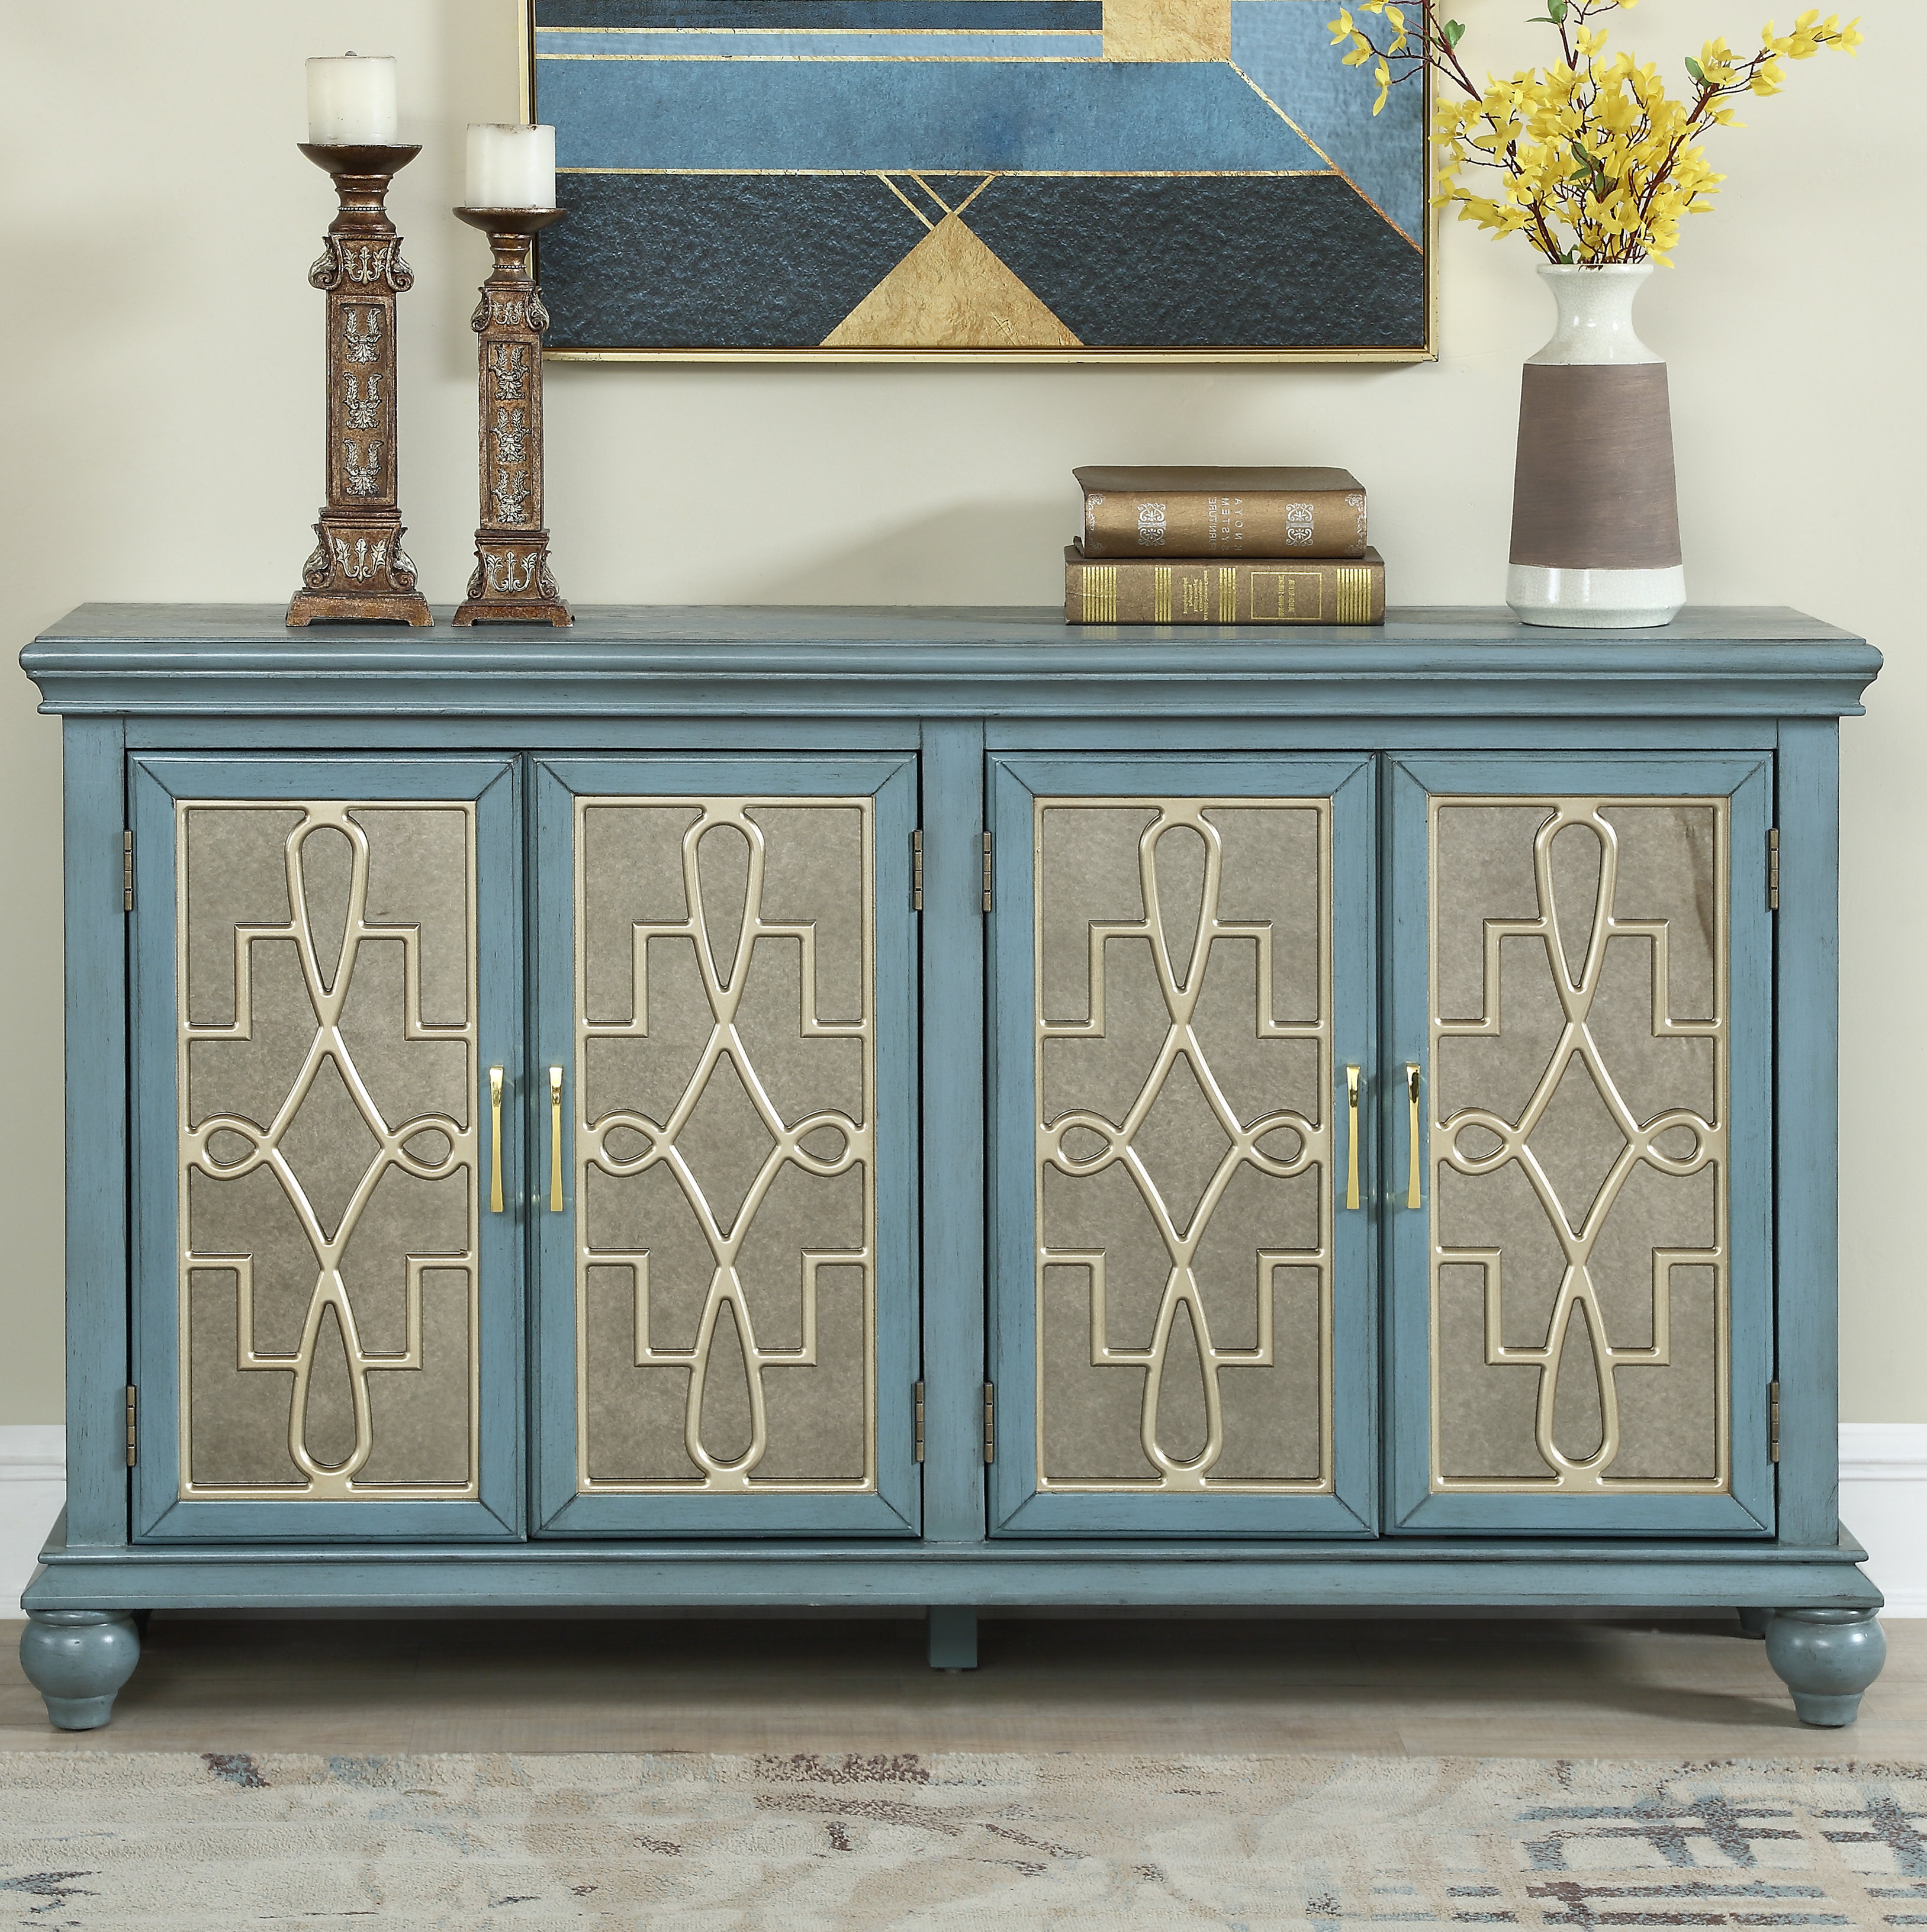 60 Inch Credenza | Wayfair For Caines Credenzas (View 10 of 20)